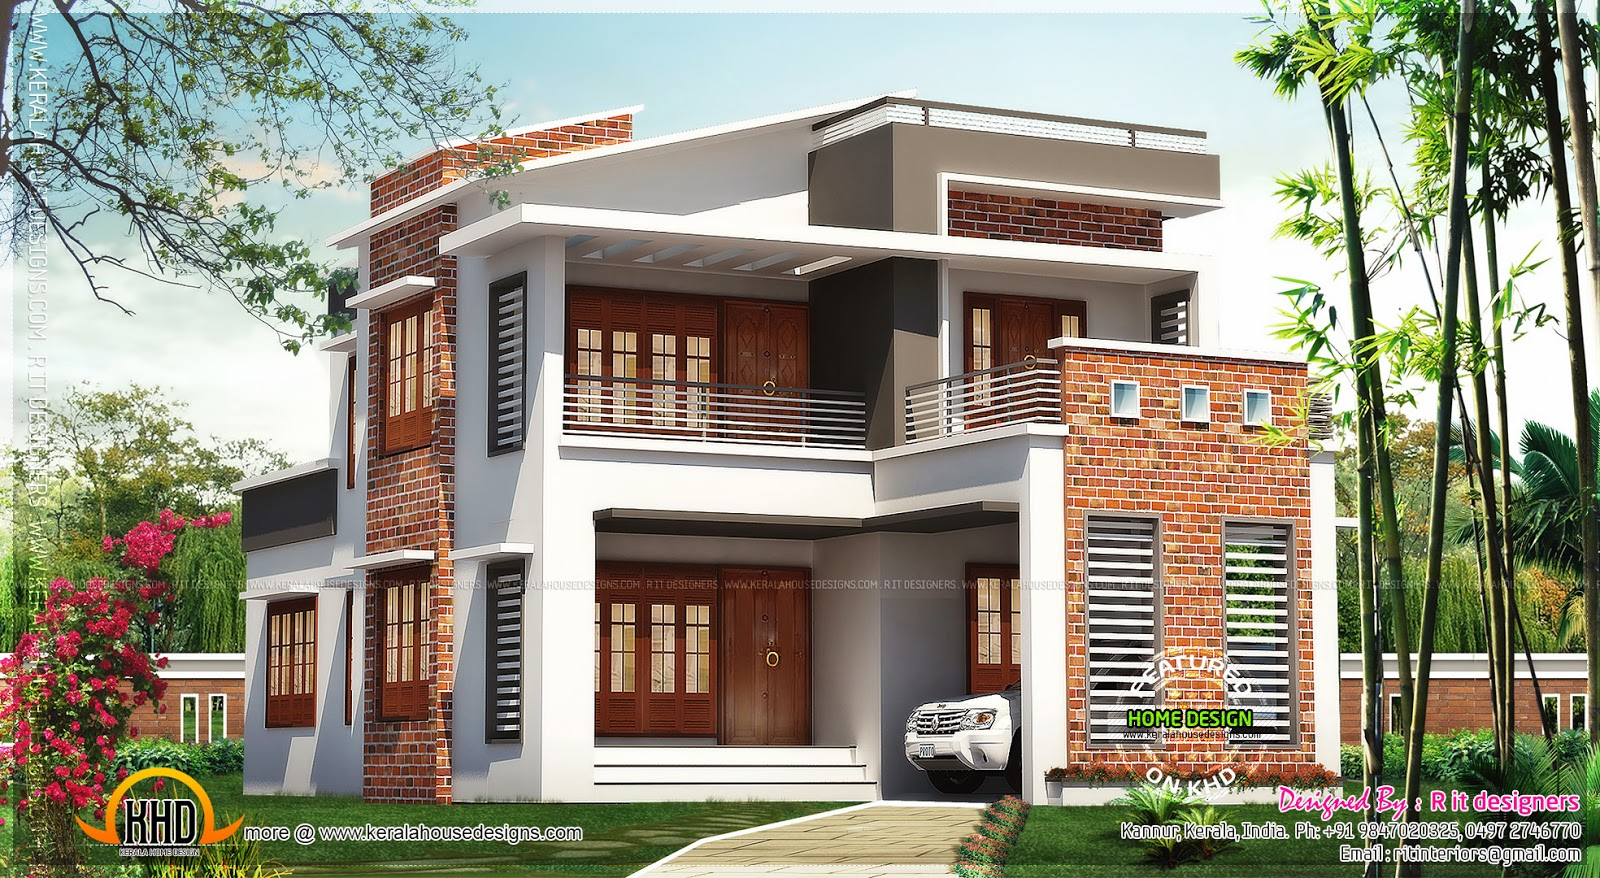 Brick mix house exterior design kerala home design and Indian small house exterior design